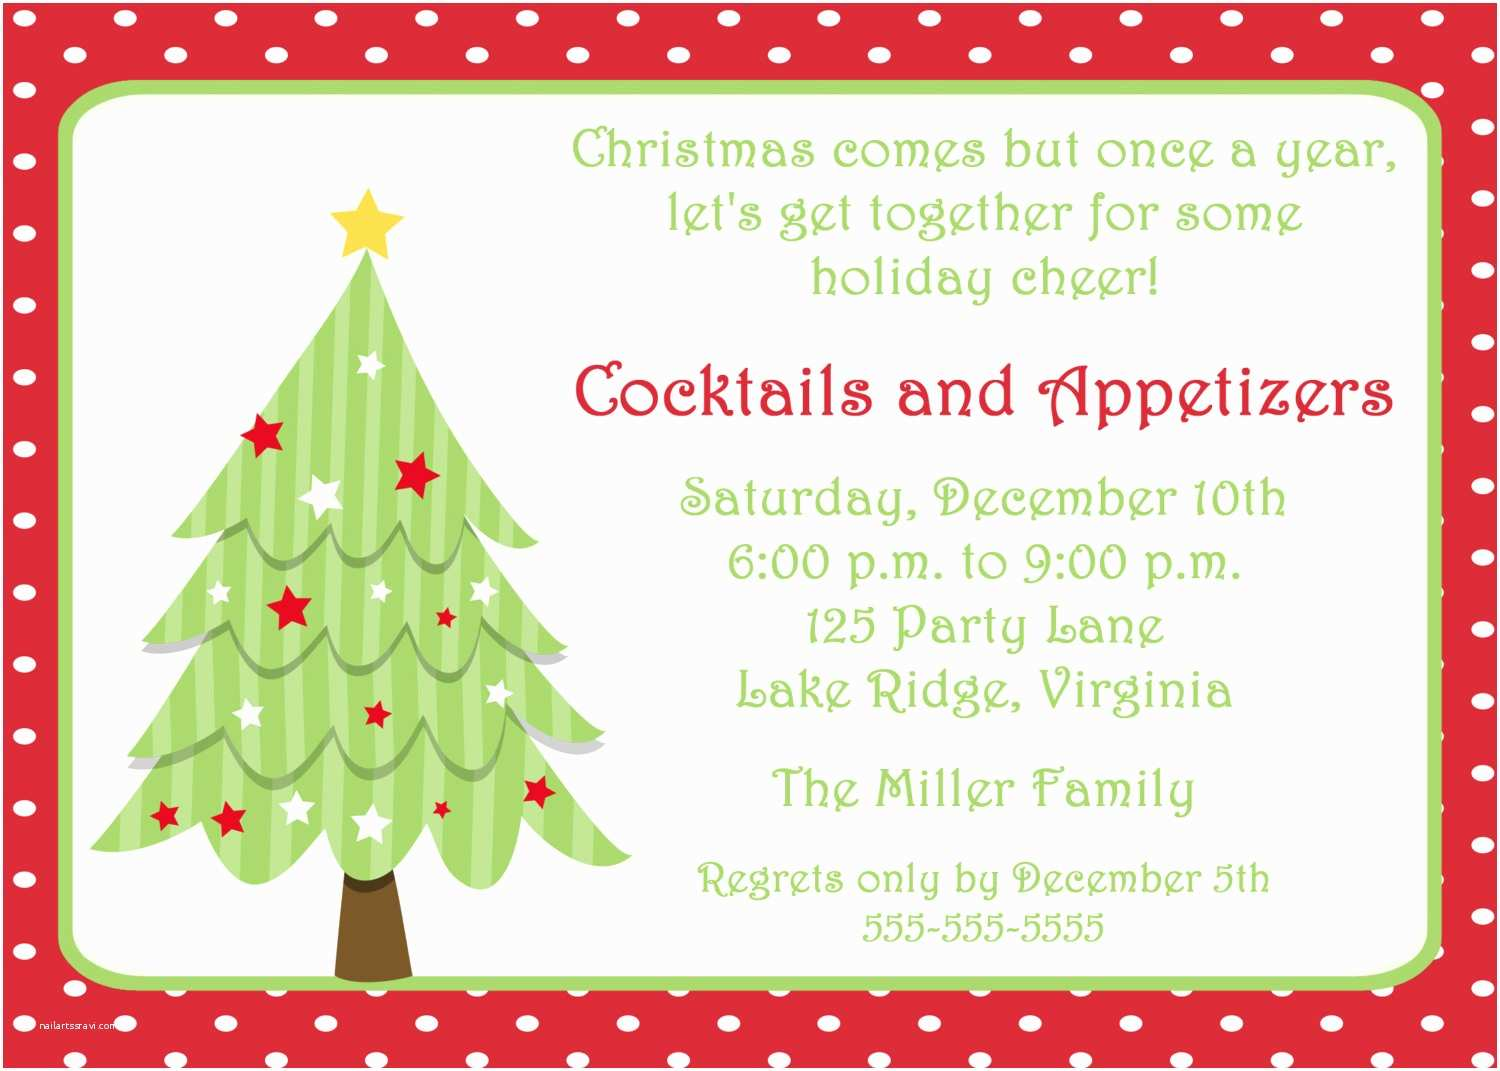 Christmas Cocktail Party Invitations Christmas Cocktails Party Invitation Card Design Idea to